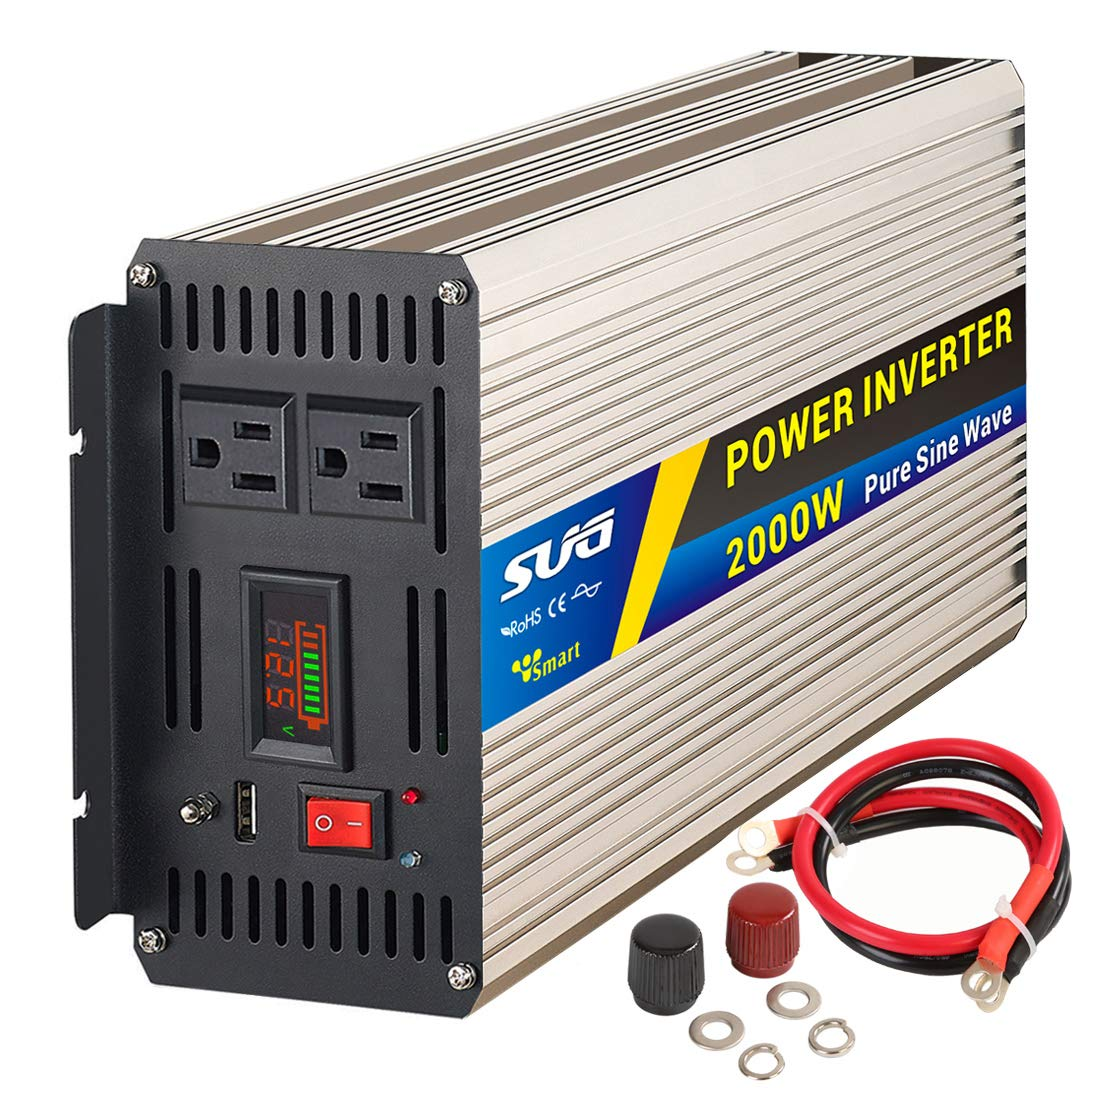 Sug 2000W(Peak 4000W) Power Inverter Pure Sine Wave DC 12V to AC 110V 120V Converter Back up Power Supply for RV, Home, Car Use by SUGPV